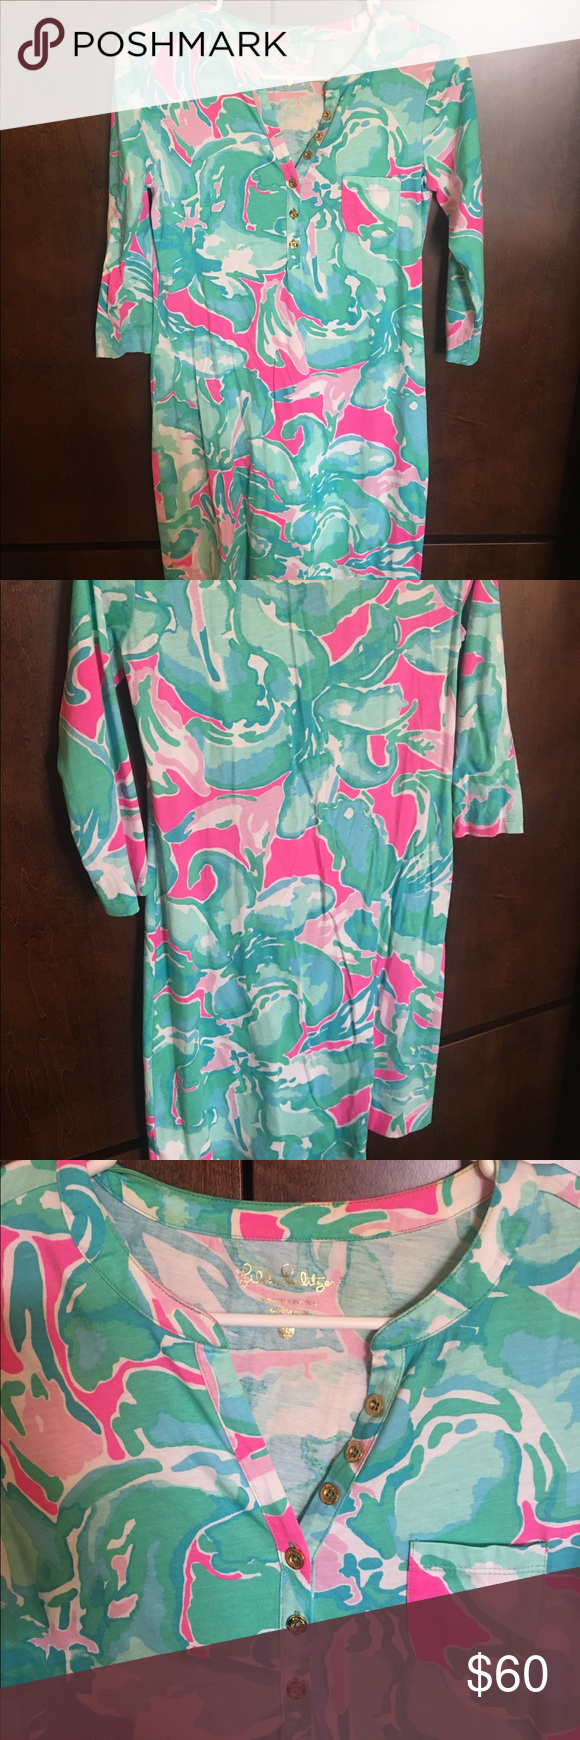 Lilly Pulitzer Palmetto Dress In Pink Sands print. Worn once.  Bright colors. Gold Button detail in front. Lilly Pulitzer Dresses